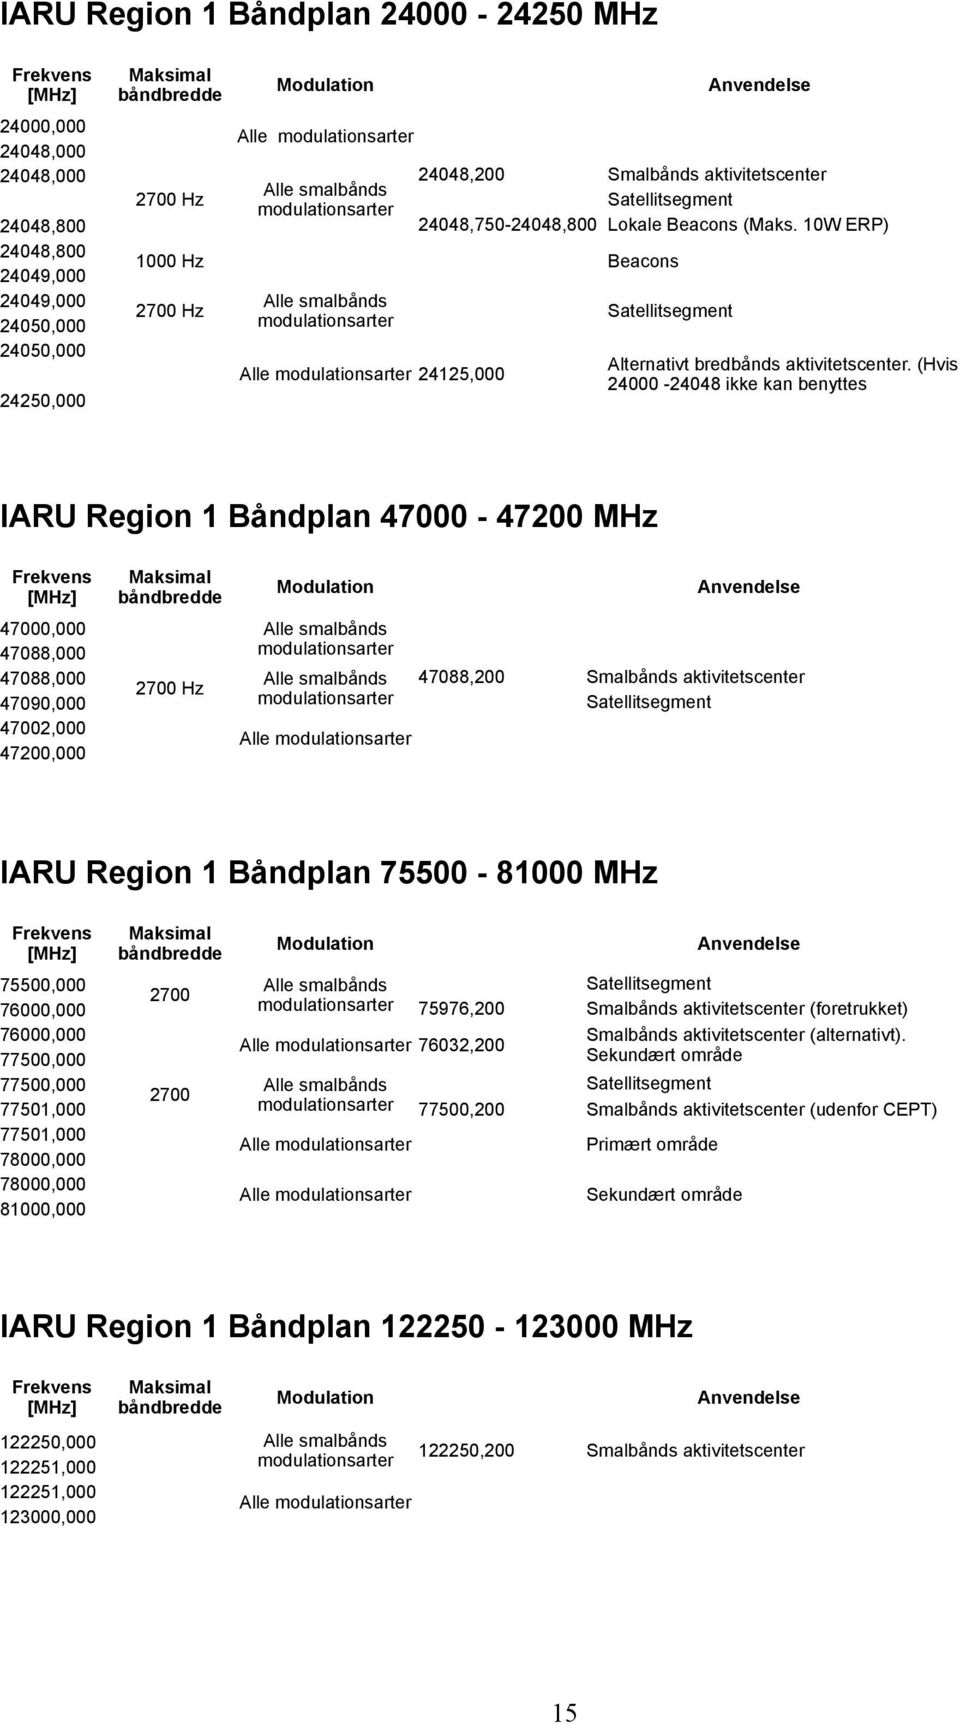 10W ERP) 24048,800 1000 Hz Beacons 24049,000 24049,000 Alle smalbånds 2700 Hz Satellitsegment modulationsarter 24050,000 24050,000 24250,000 Alle modulationsarter 24125,000 Alternativt bredbånds